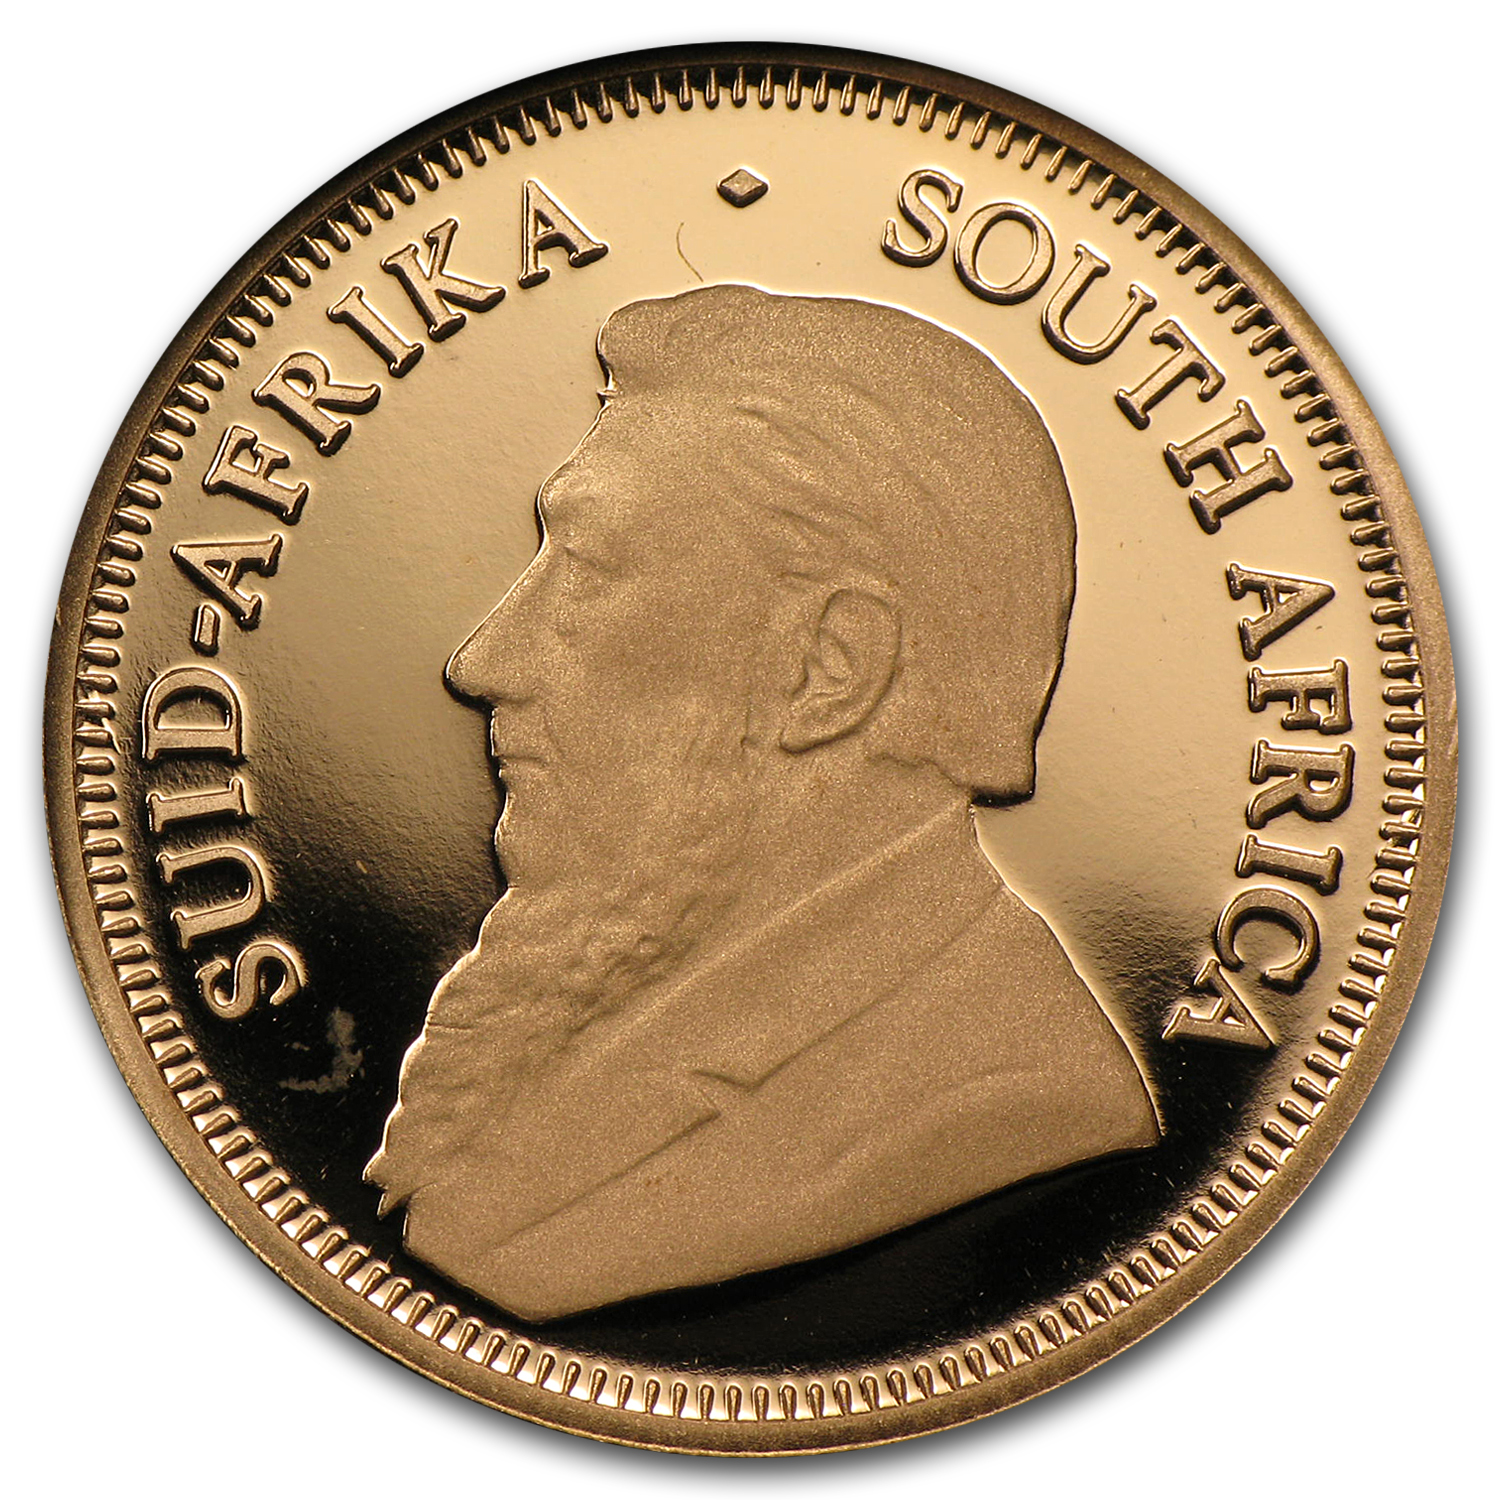 2010 South Africa 1/4 oz Proof Gold Krugerrand